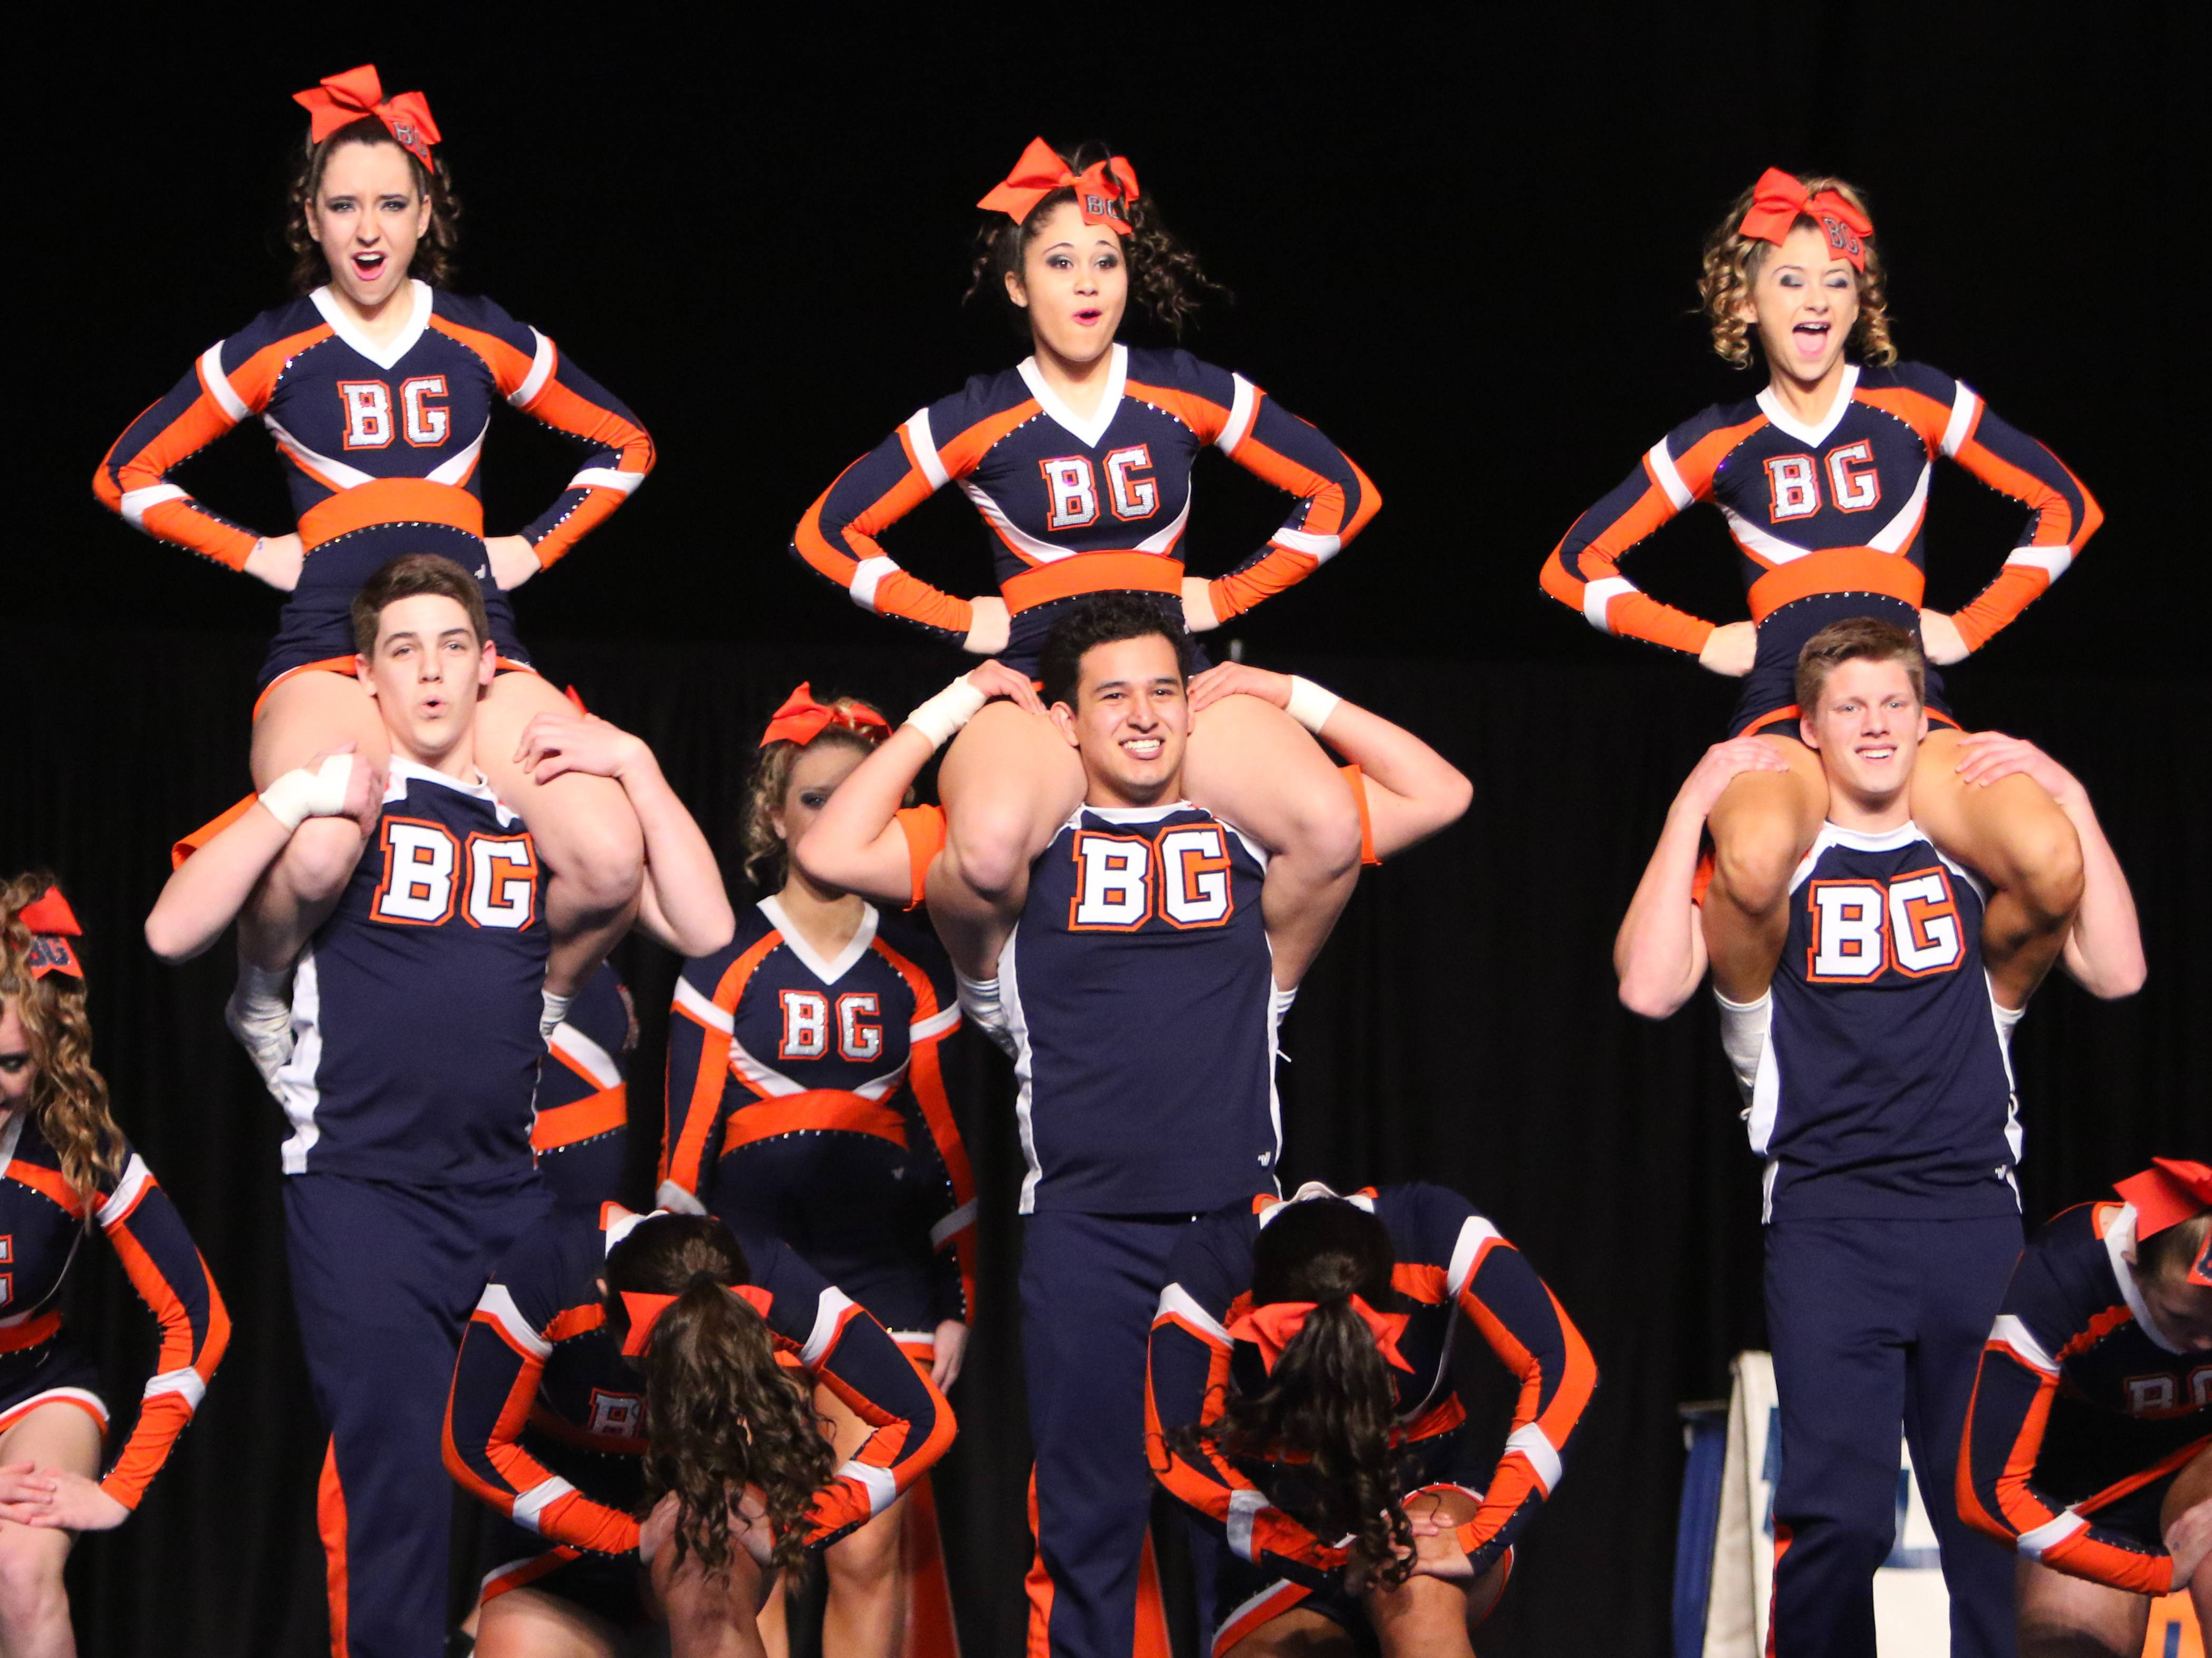 Buffalo Grove High School, the defending coed champs, compete in the state cheerleading finals Saturday in Bloomington.